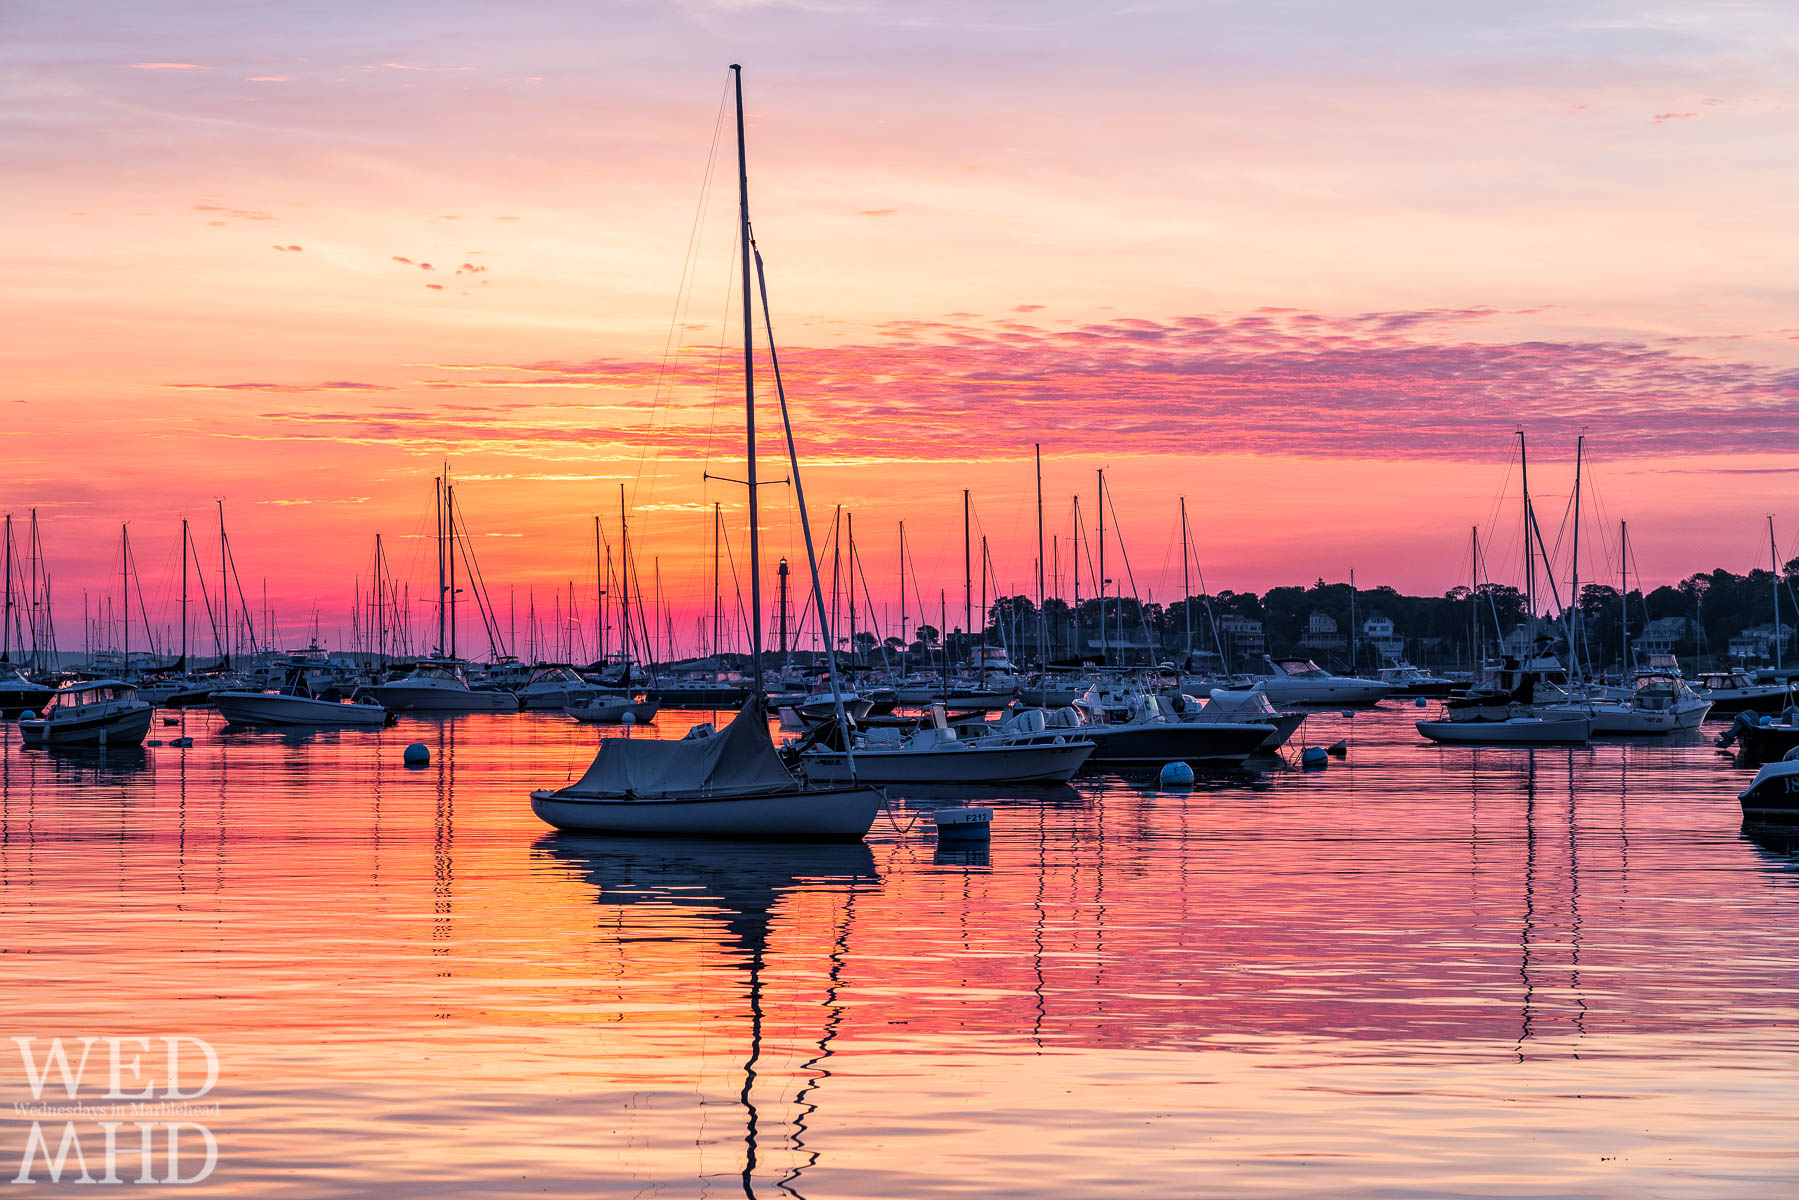 There's nothing like a harbor sunrise when the moorings are filled and the light reflects on the still waters